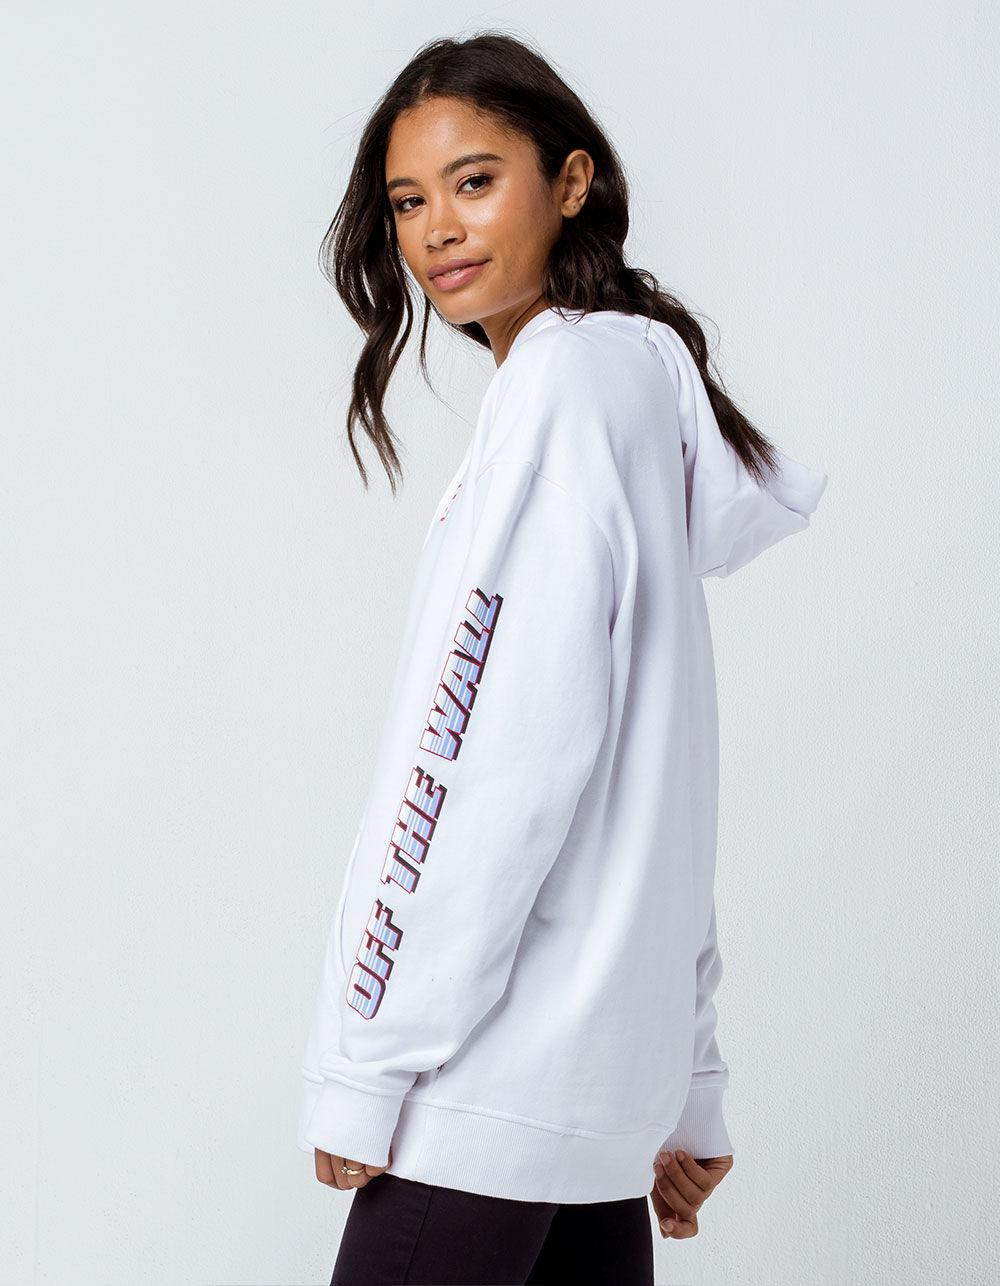 8e1faeab69d060 Lyst - Vans Pilot White Womens Oversized Hoodie in White - Save 37%